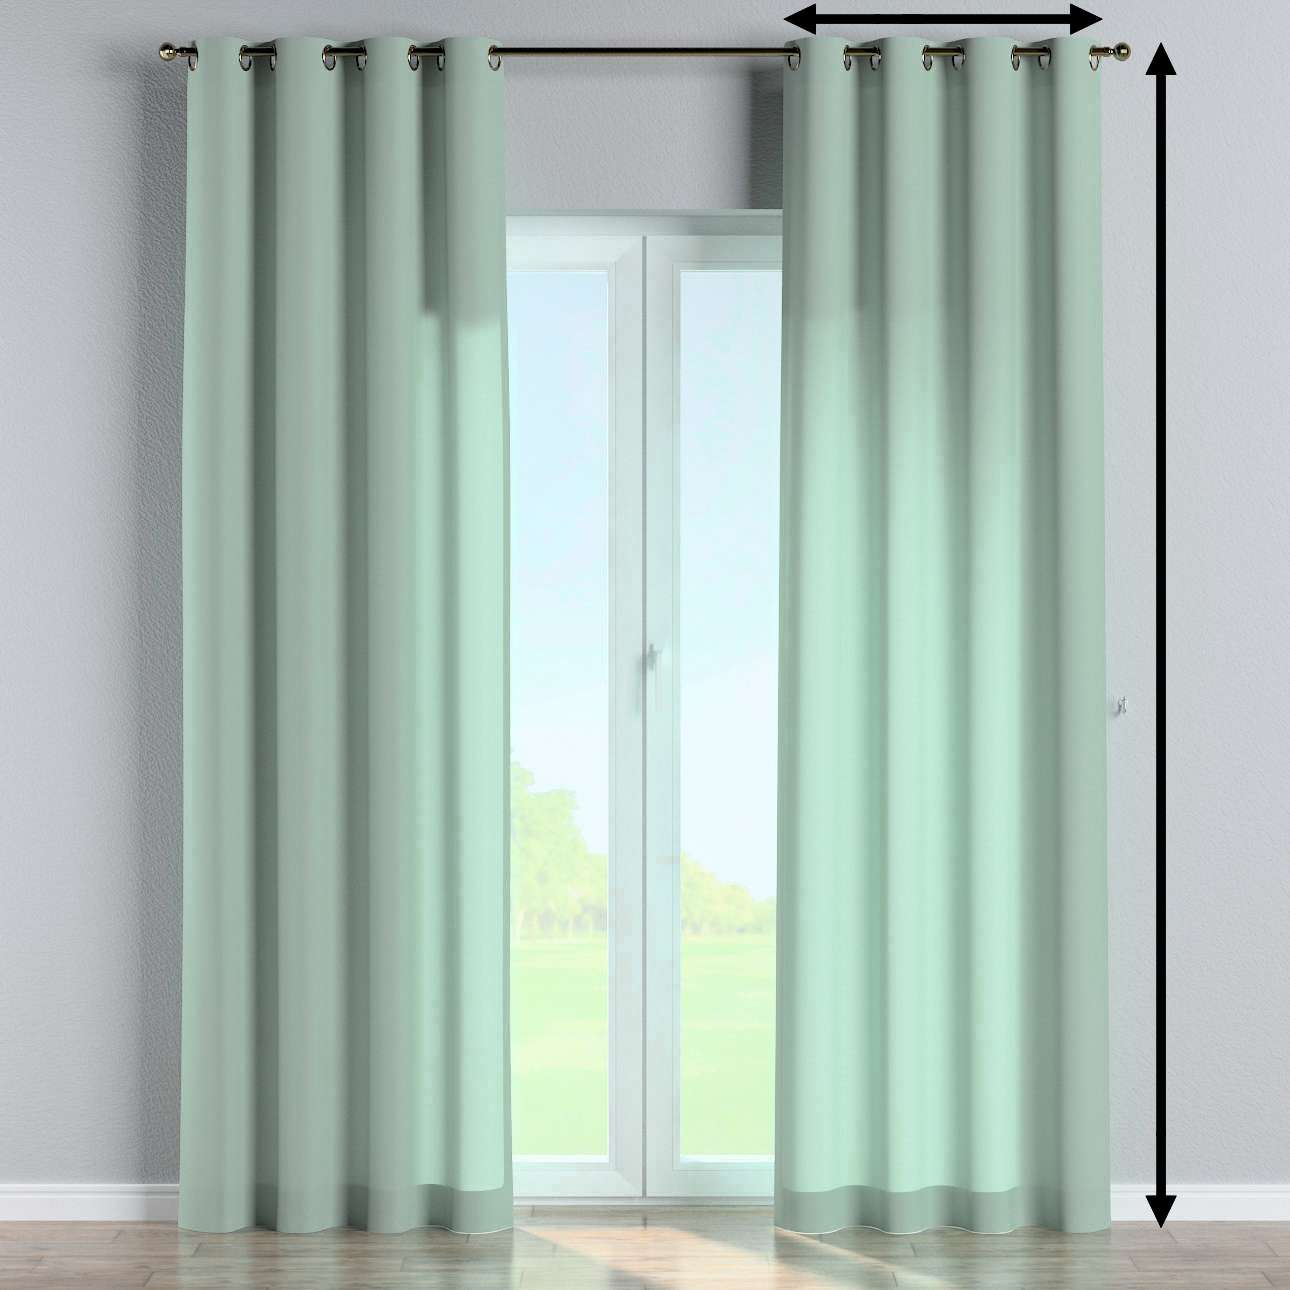 Eyelet curtain in collection Loneta , fabric: 133-61